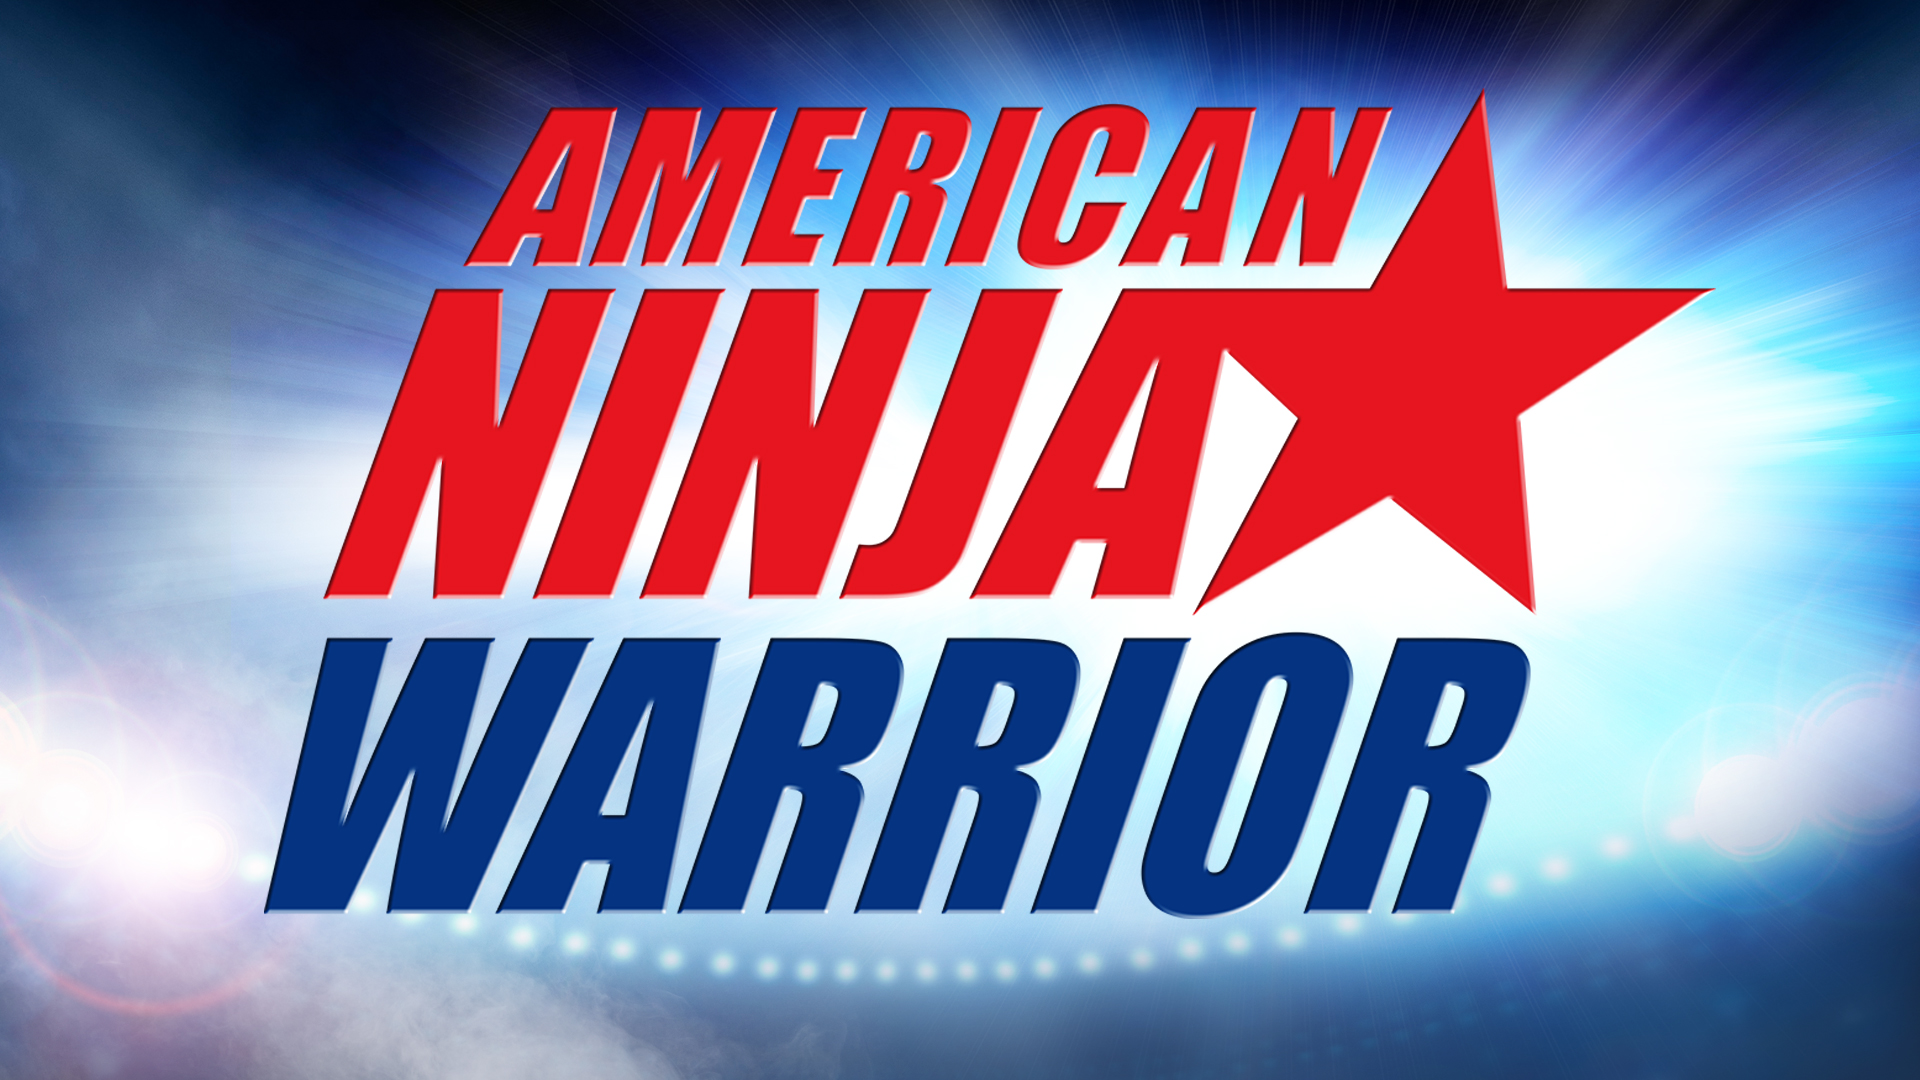 Appearing on a celebrity edition of American Ninja Warrior for Red Nose Day, Amell impressively completed the entire first course as well as a decent part of the second one.